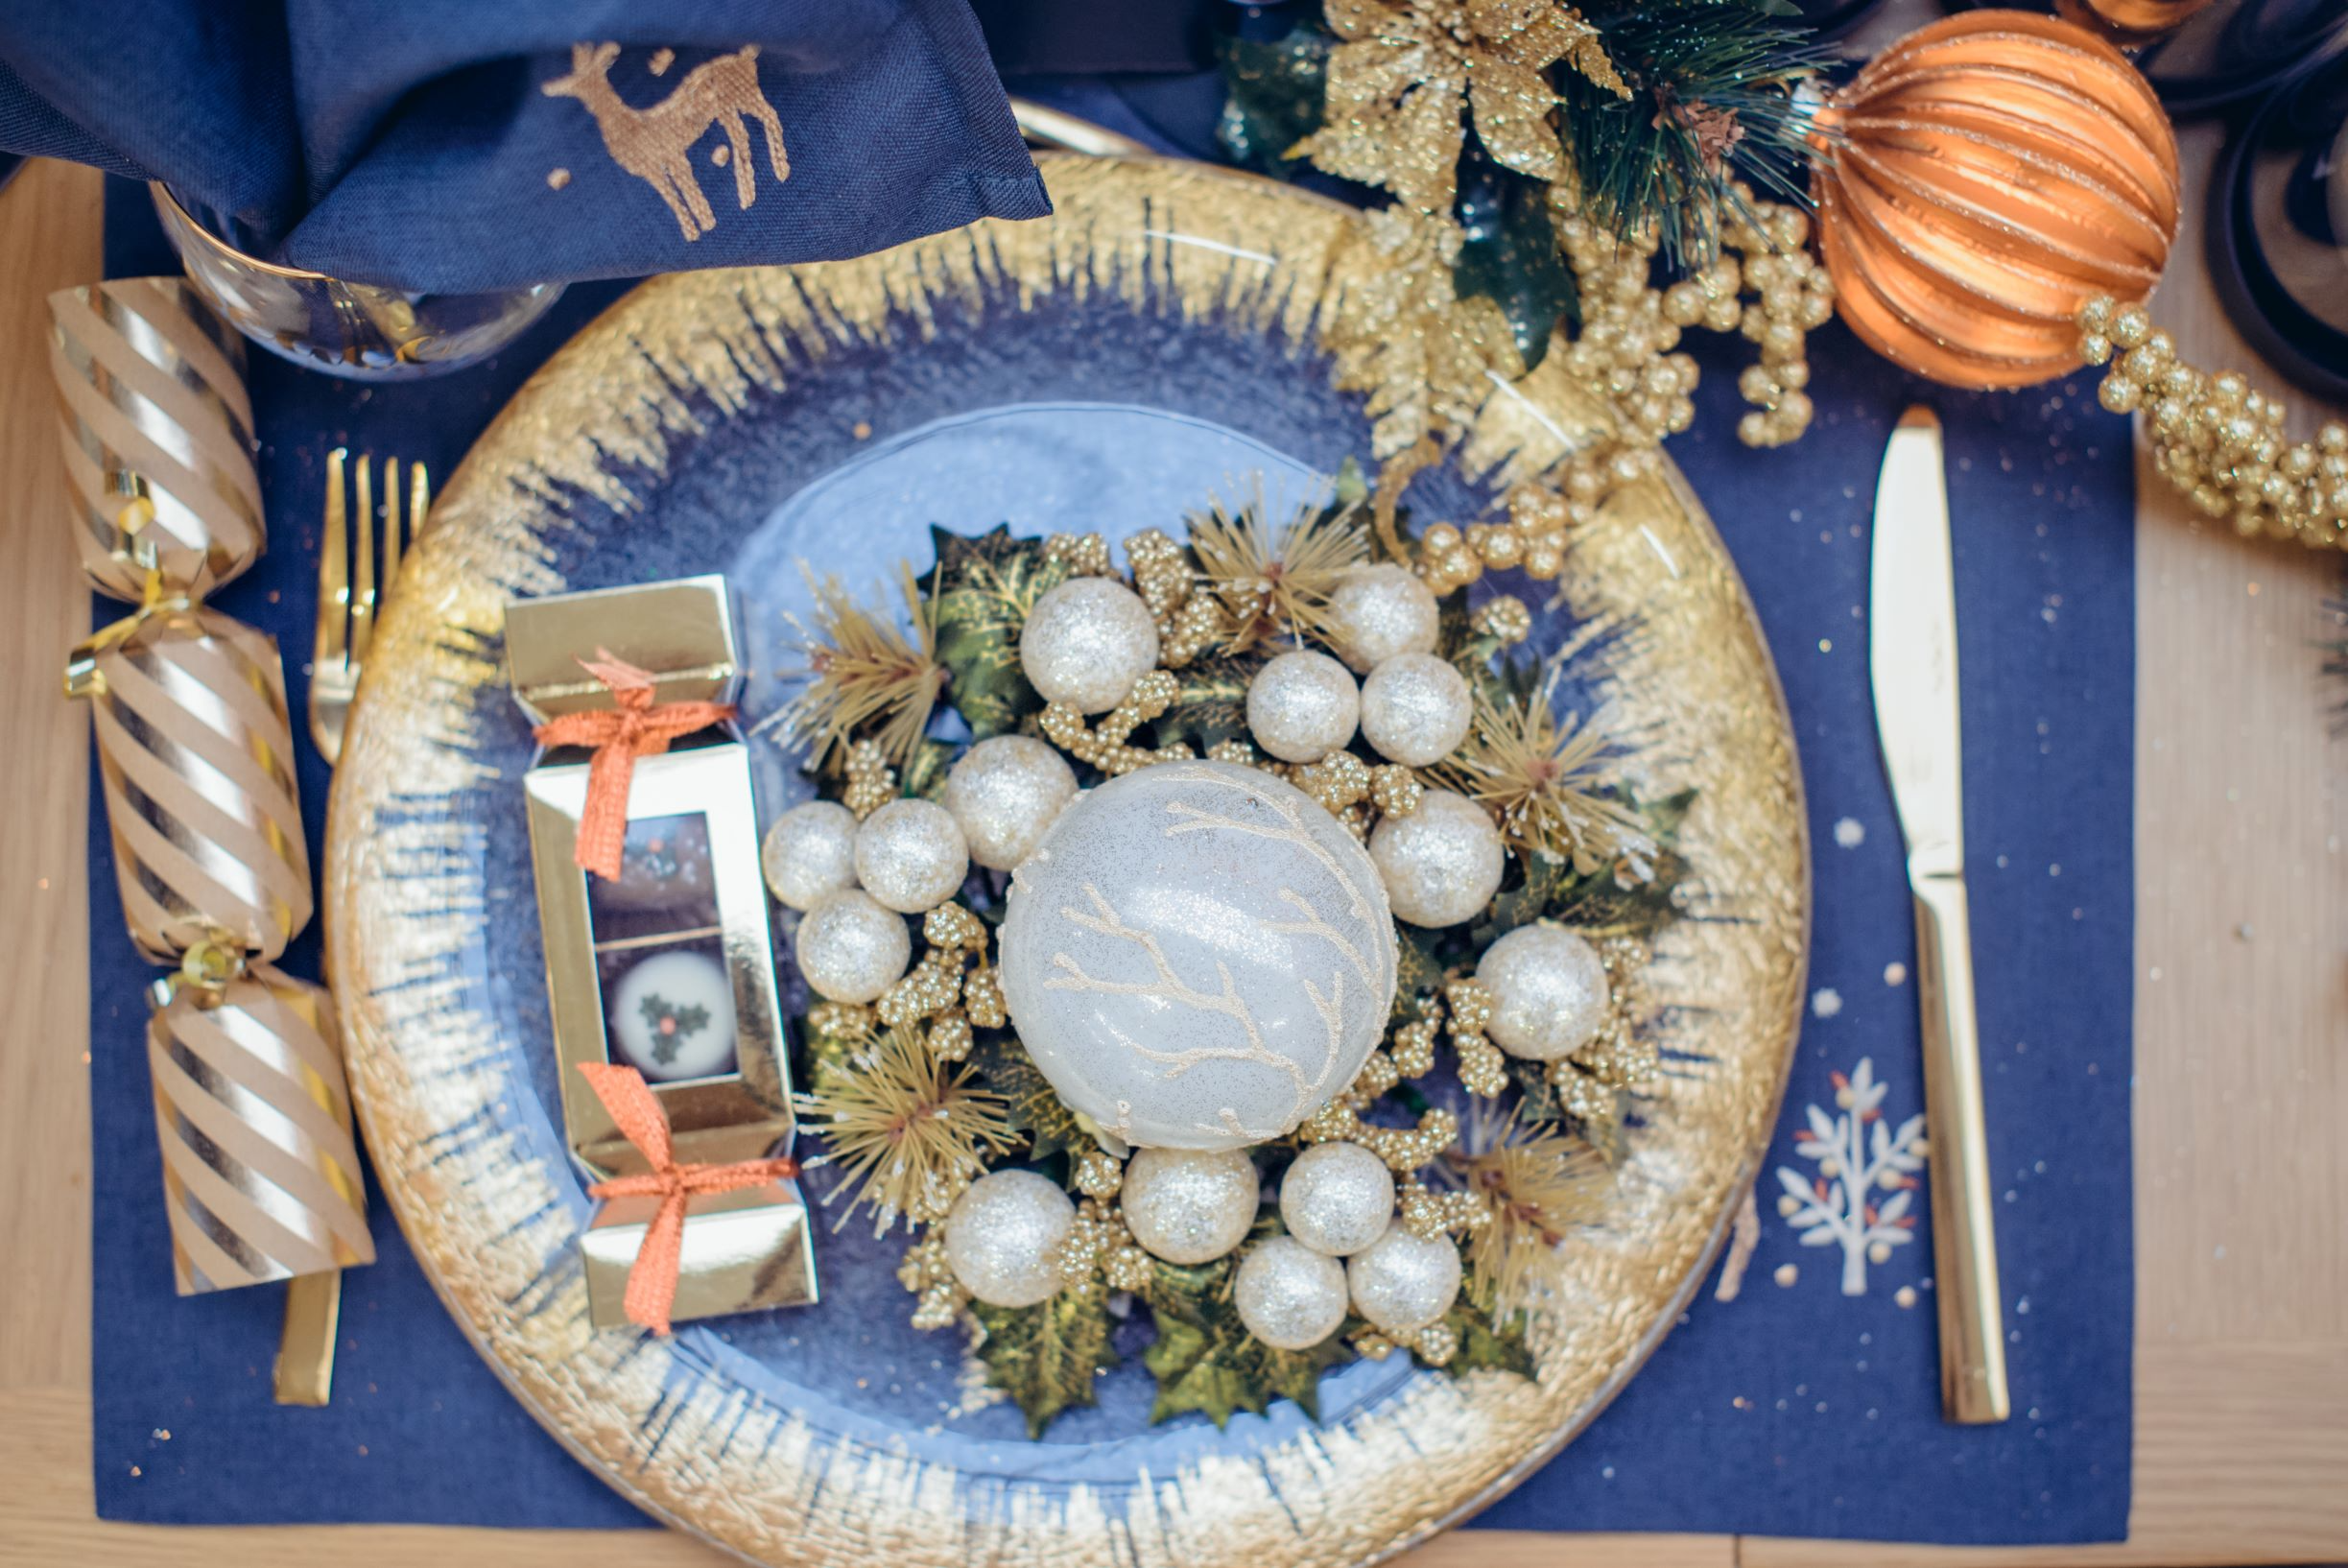 Glam Christmas table setup in blue and gold theme.